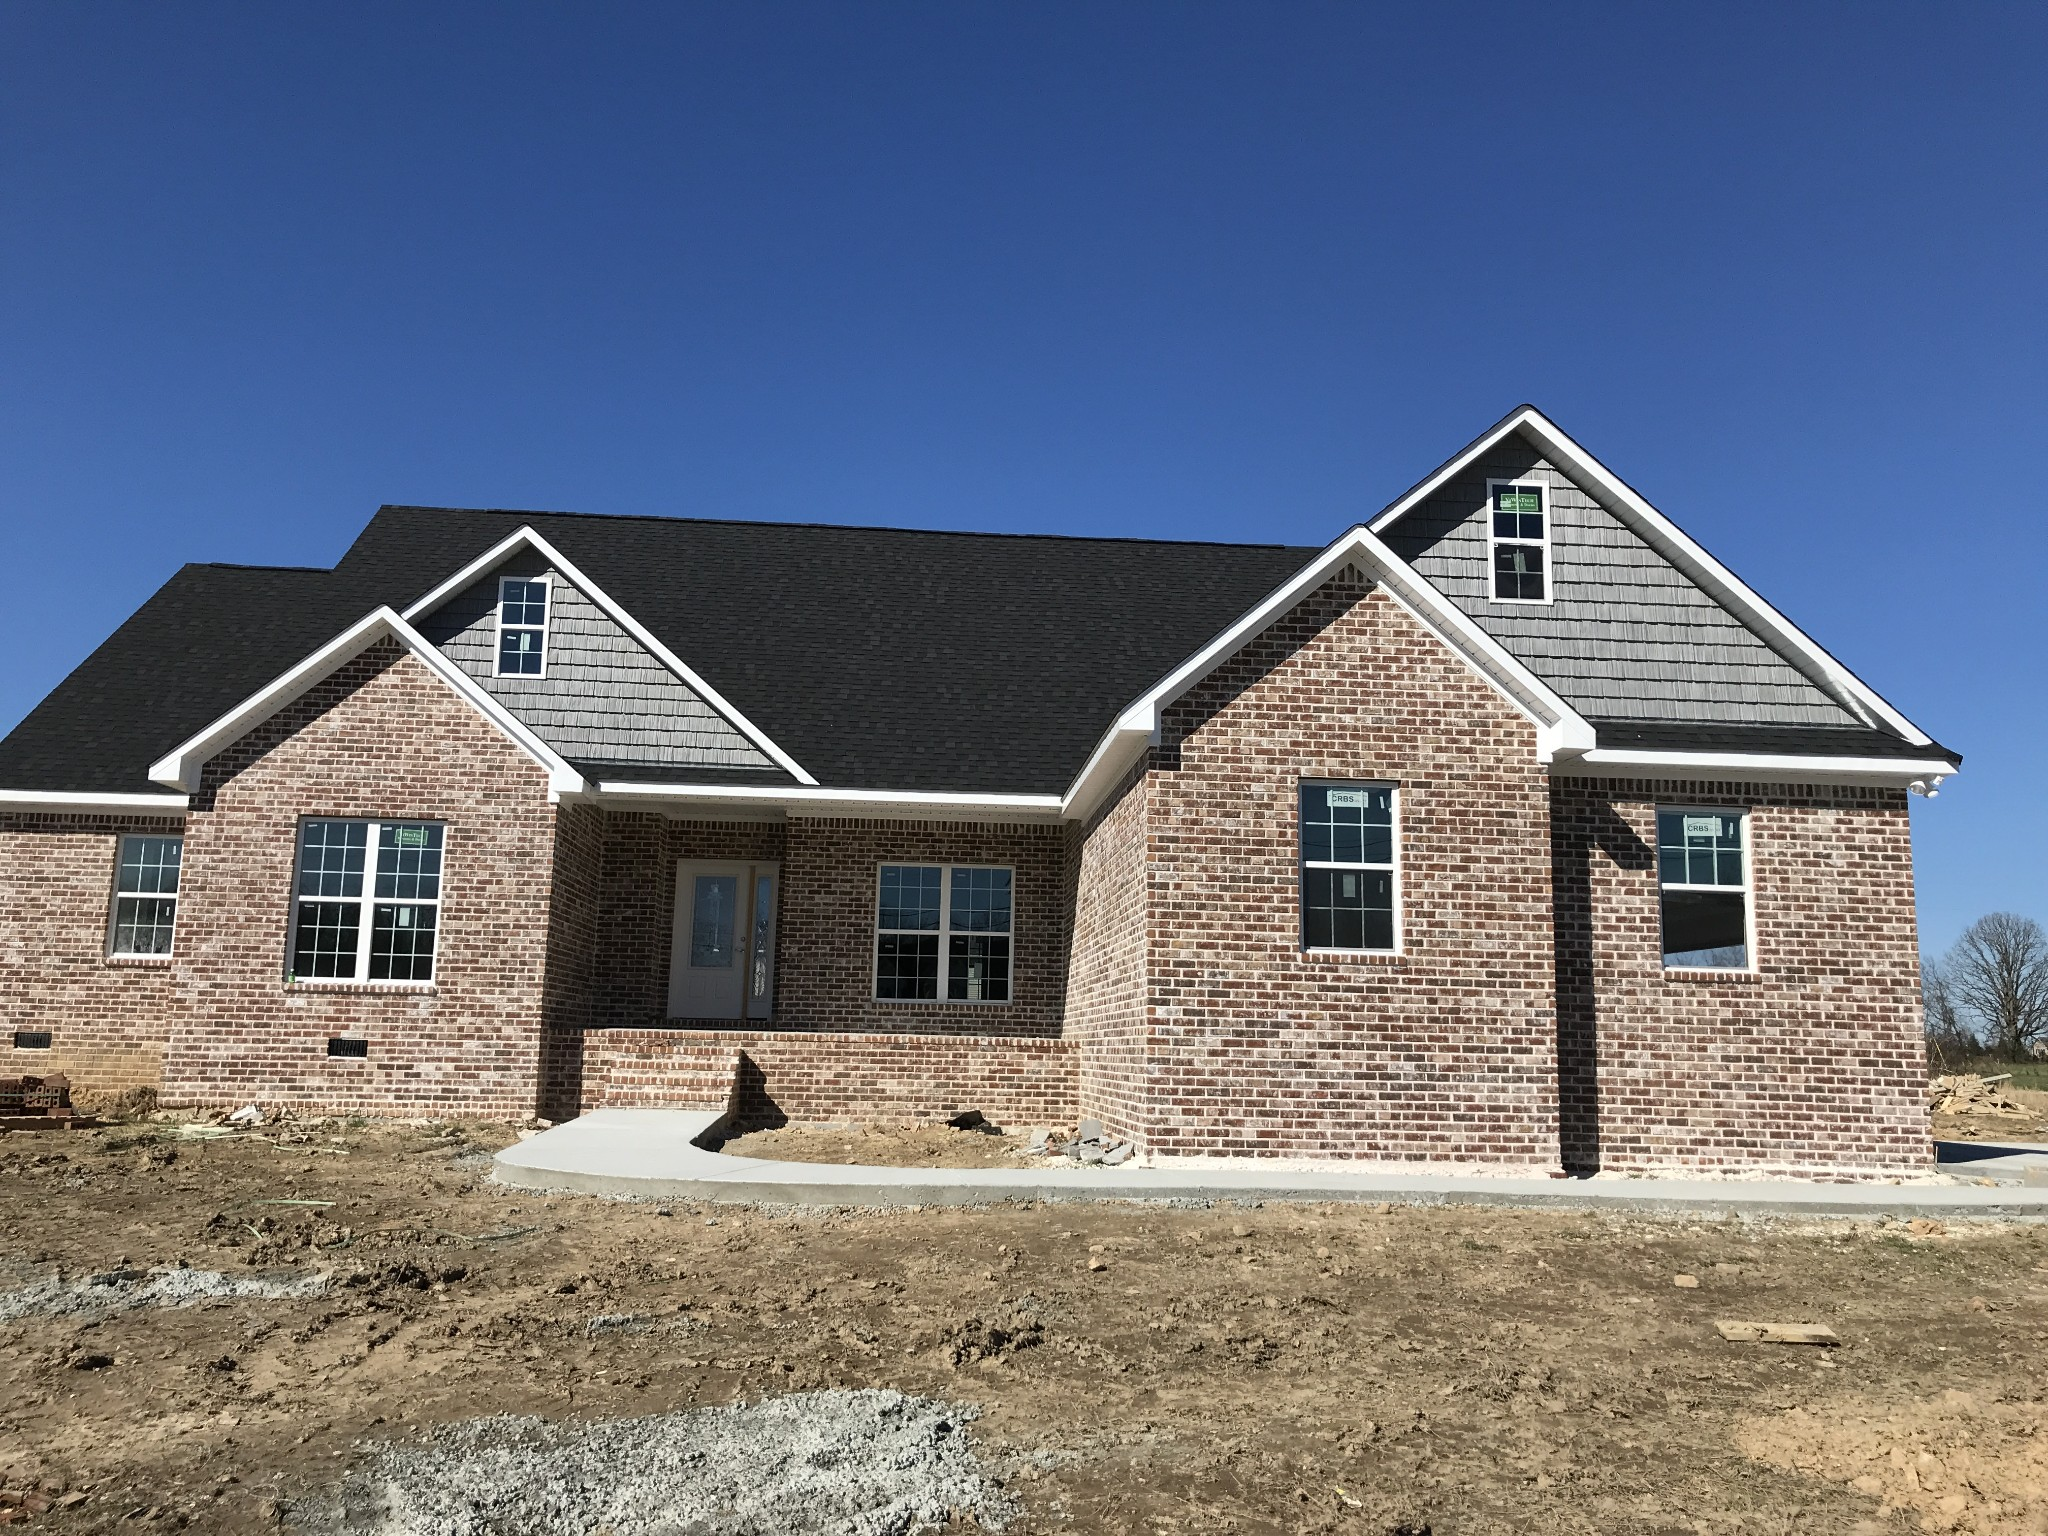 331 Sunshine Lane, Summertown, TN 38483 - Summertown, TN real estate listing